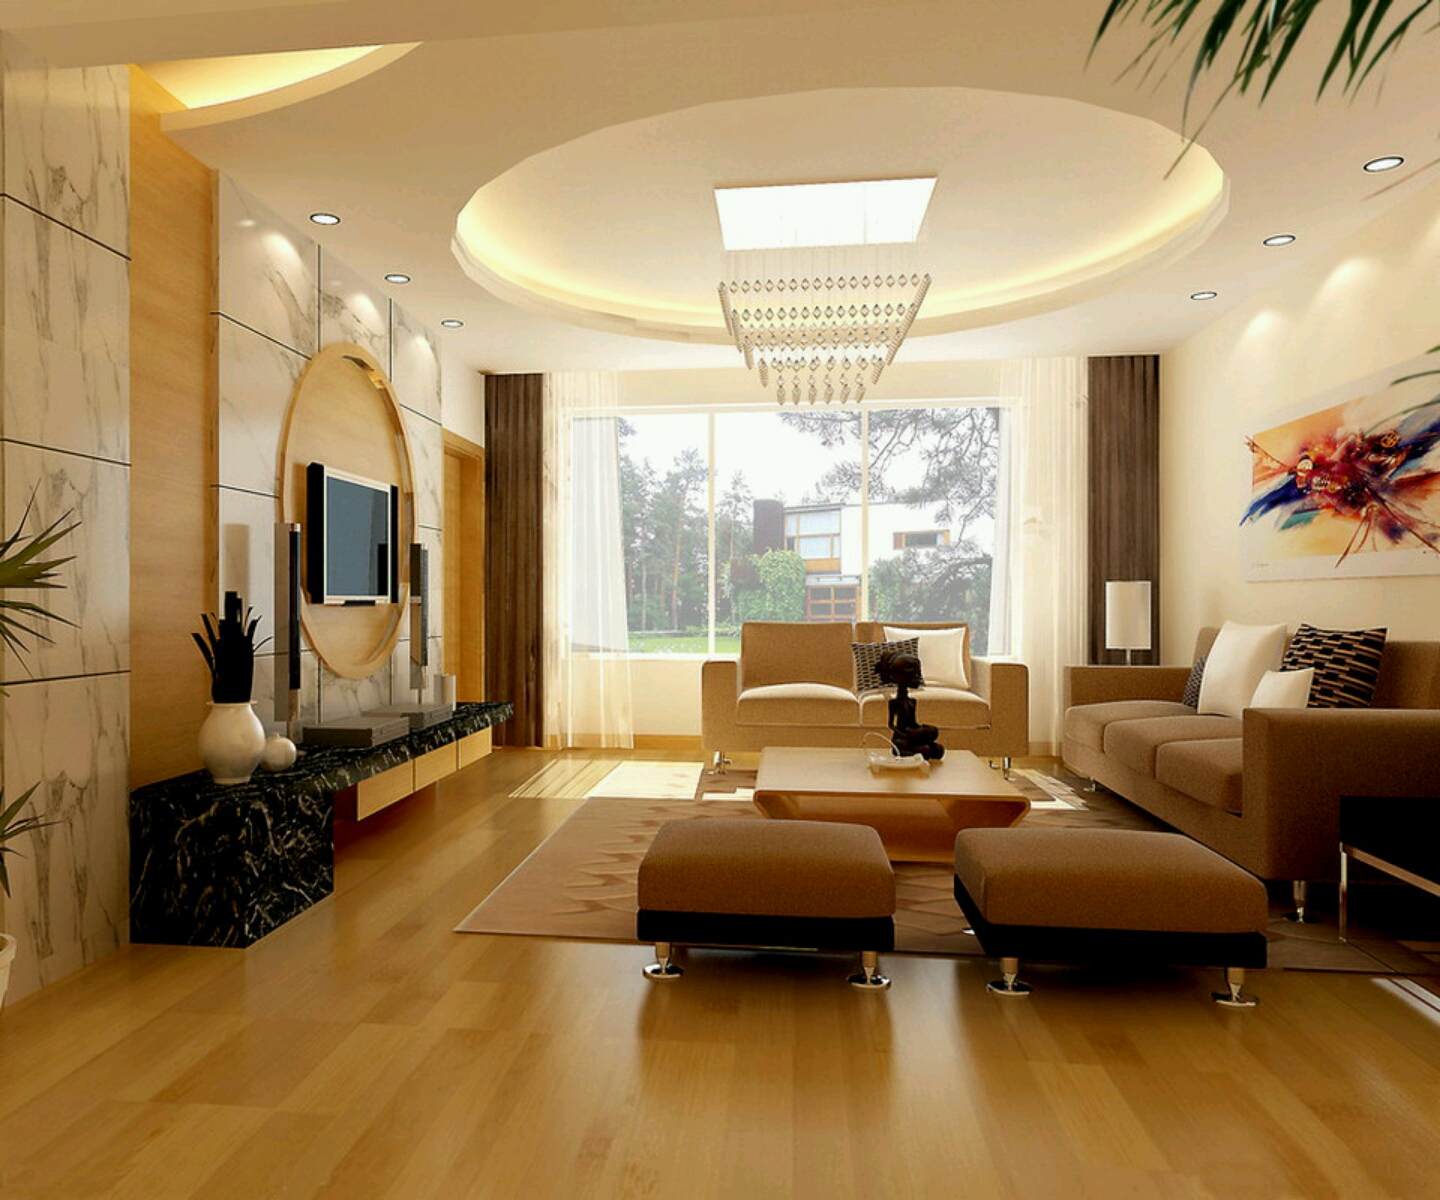 Modern interior decoration living rooms ceiling designs for Home room decoration